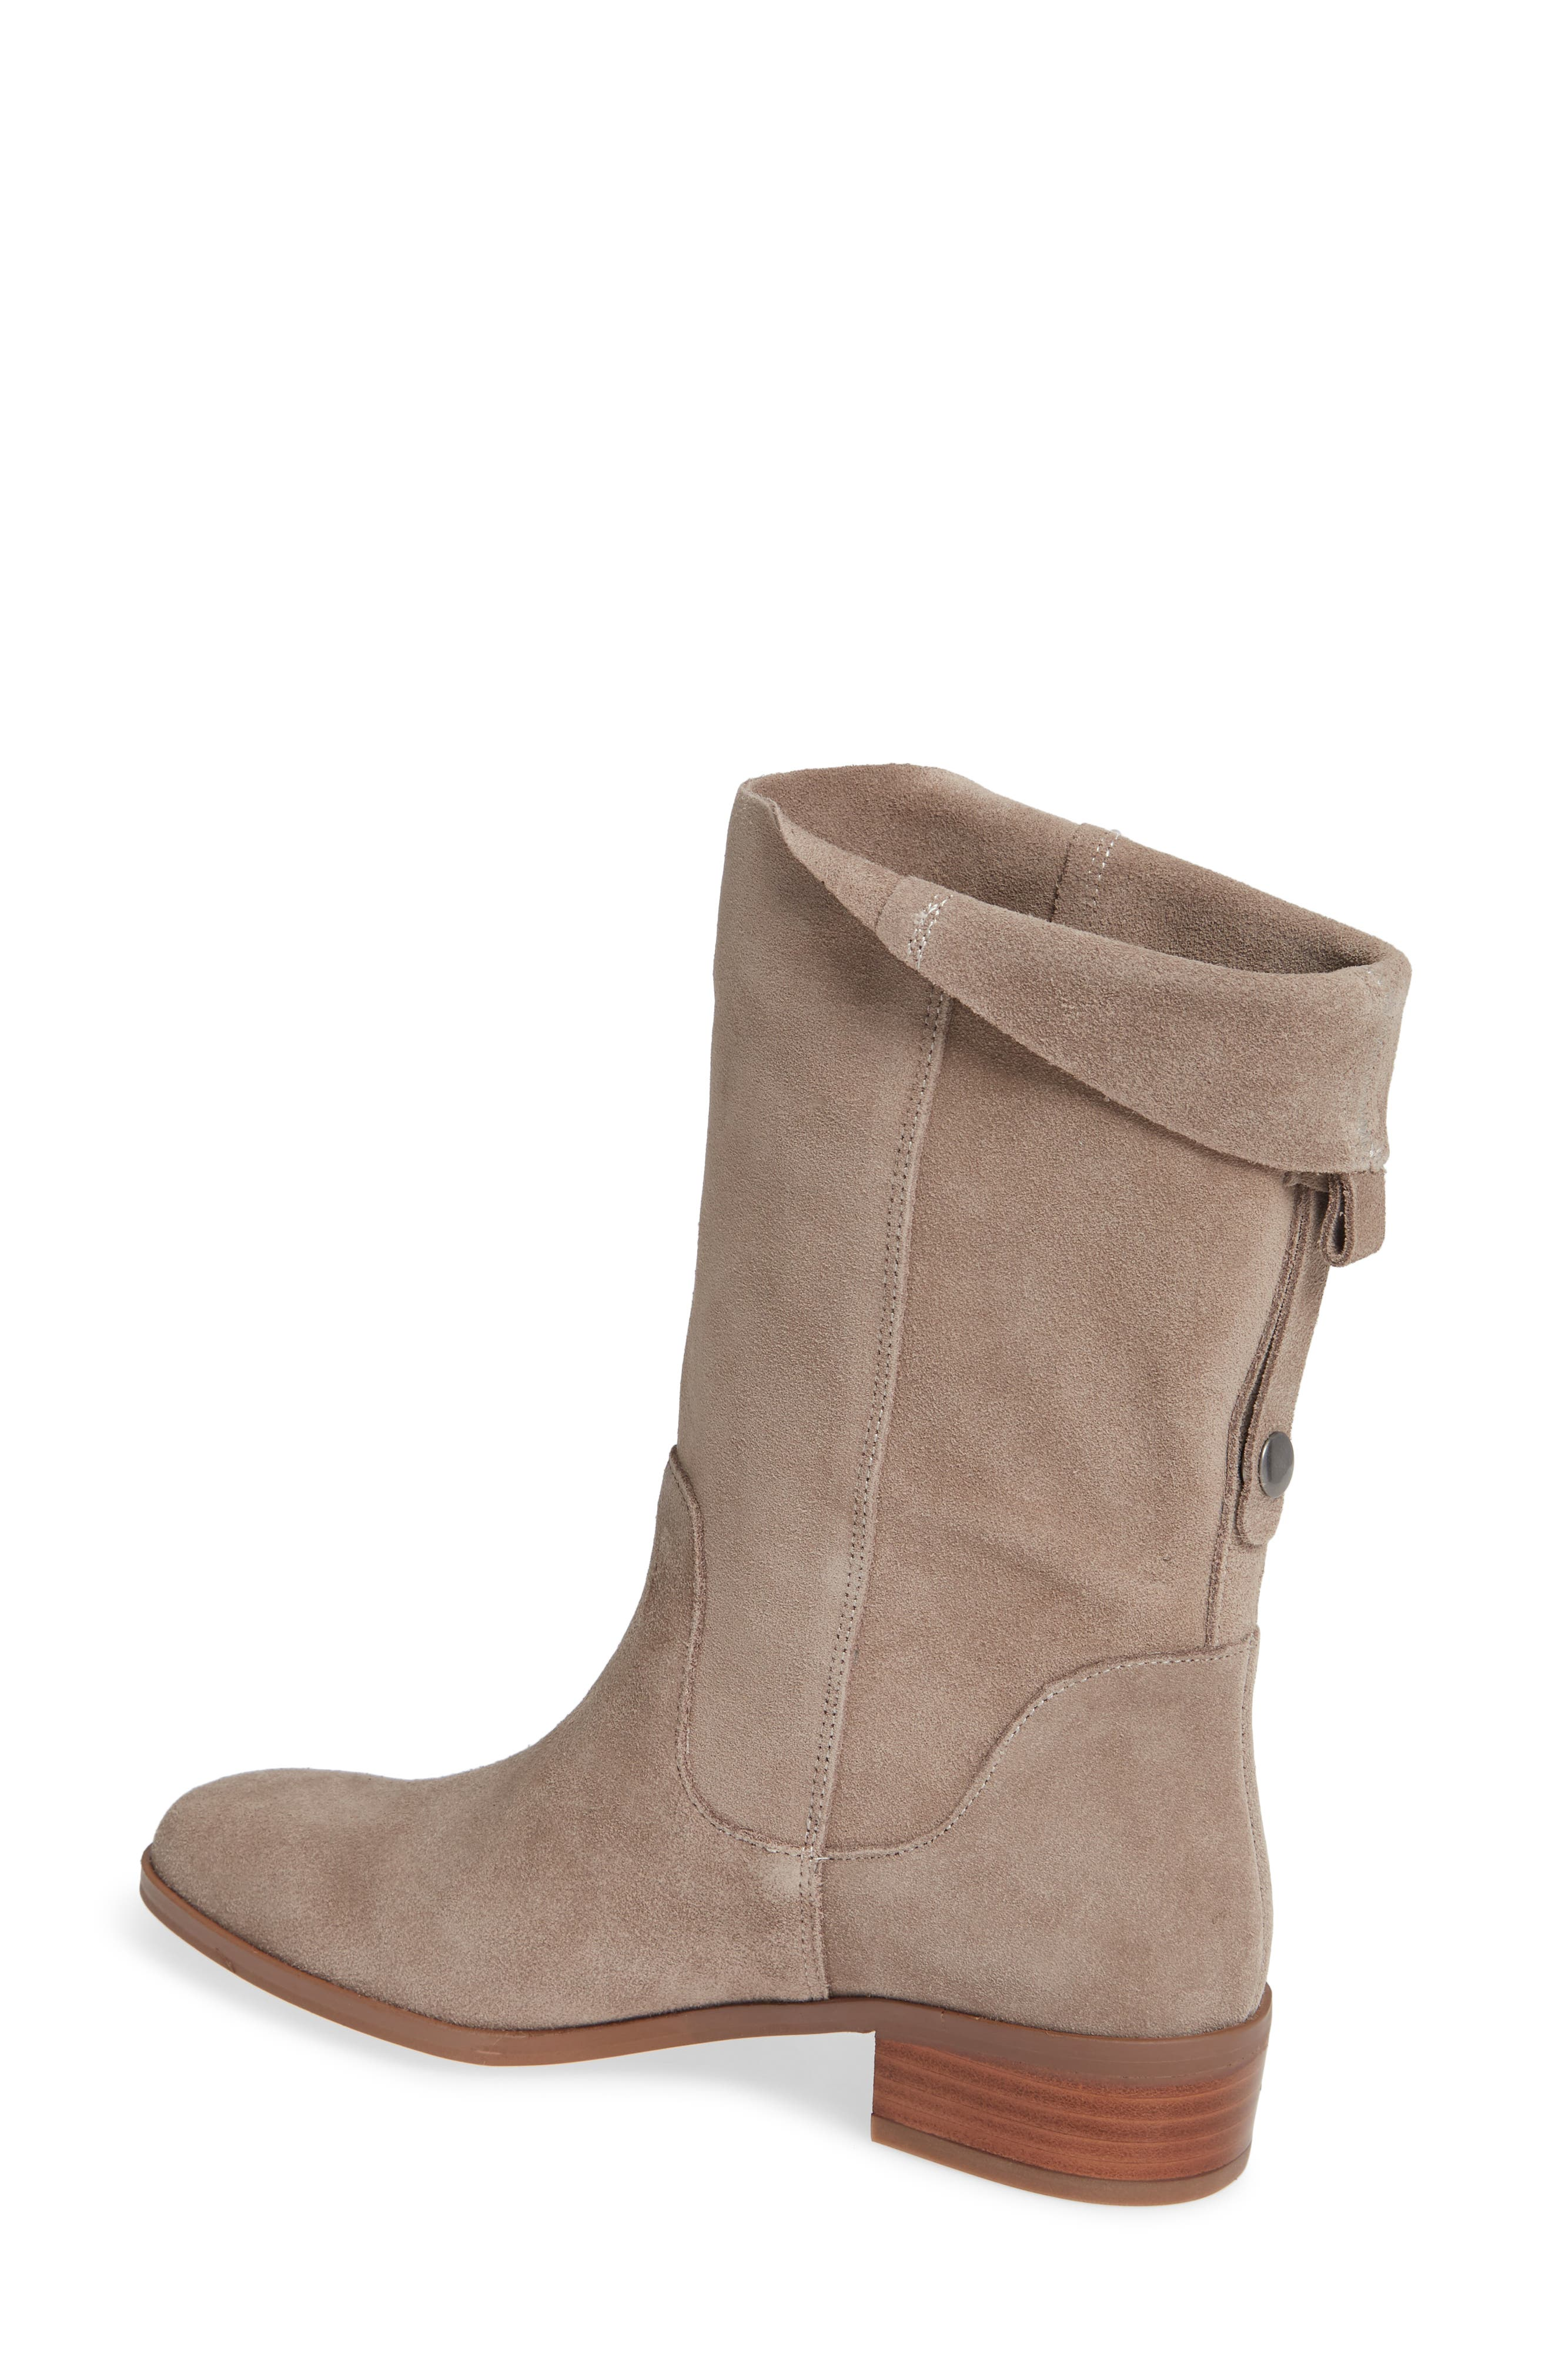 Calanth Bootie,                             Alternate thumbnail 2, color,                             MUSHROOM SUEDE